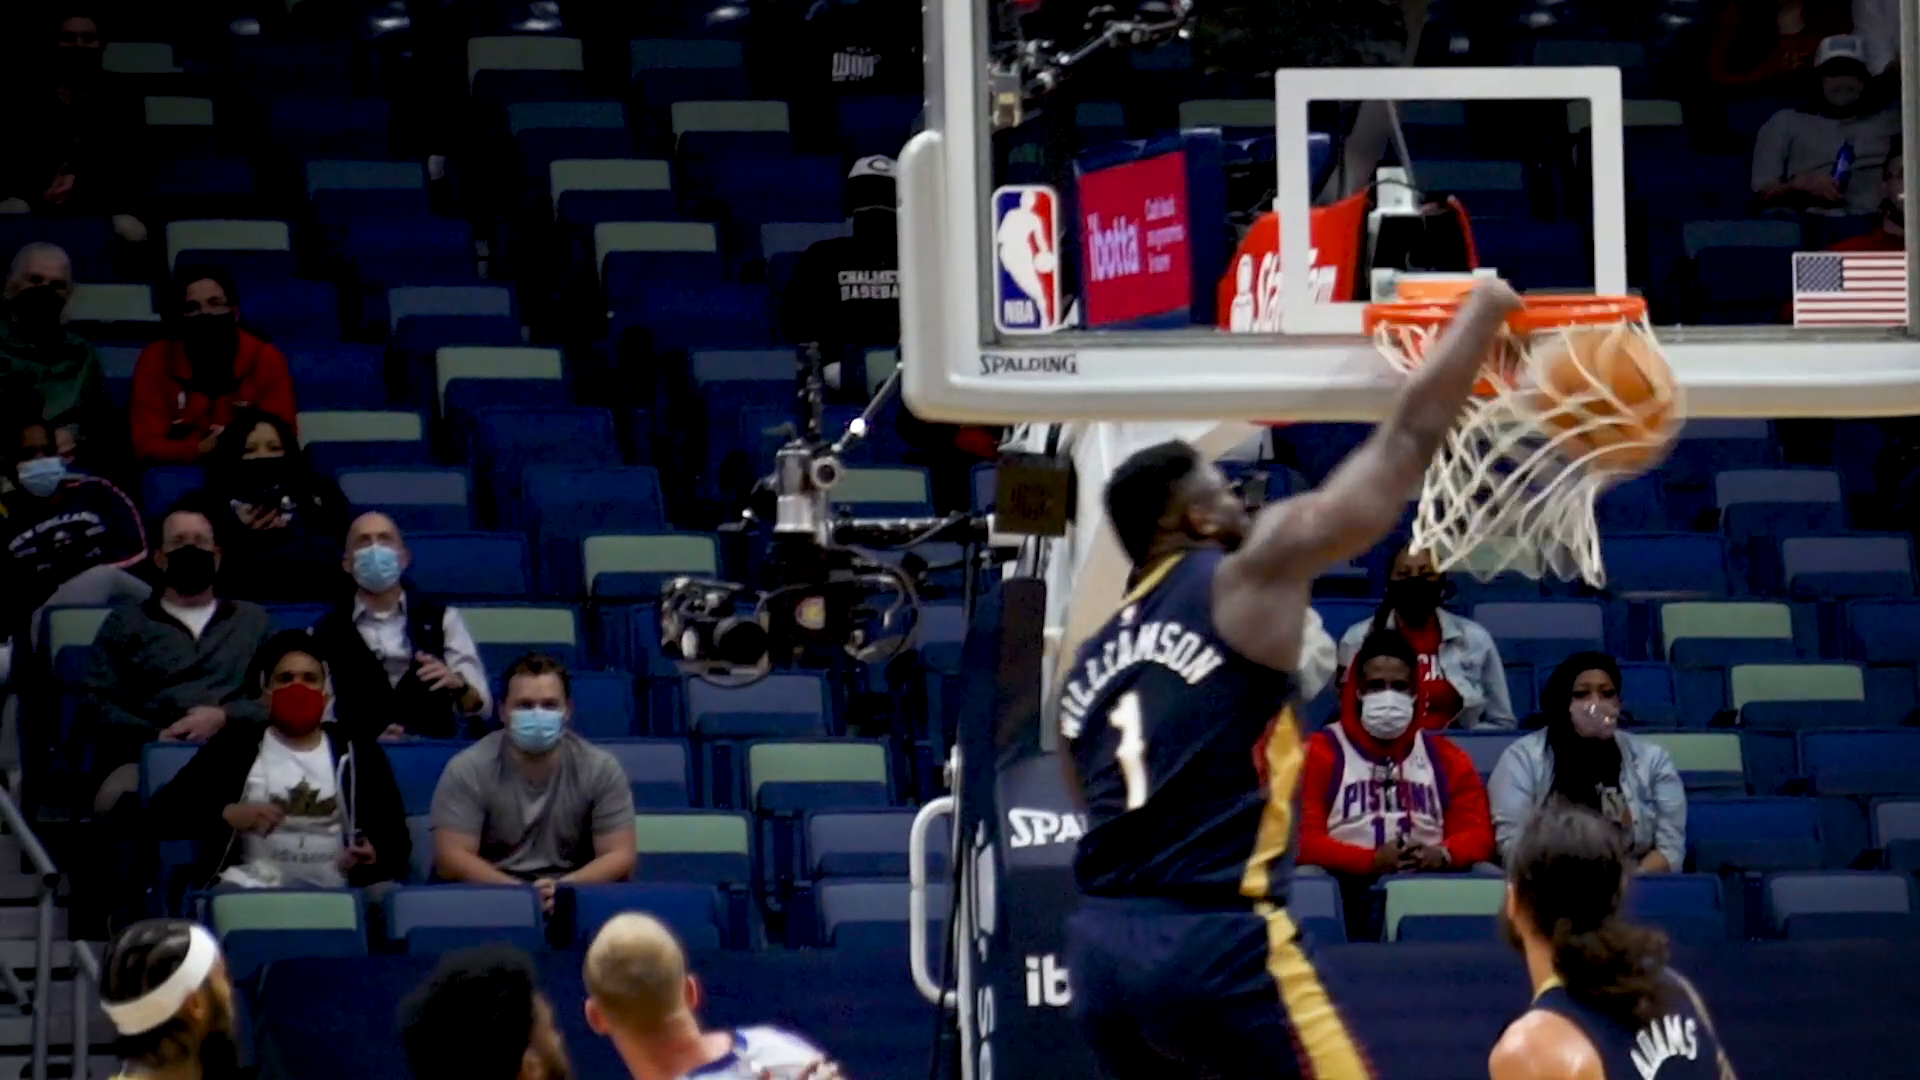 Pelicans vs. Pistons Slo-Mo Highlights 2/24/21